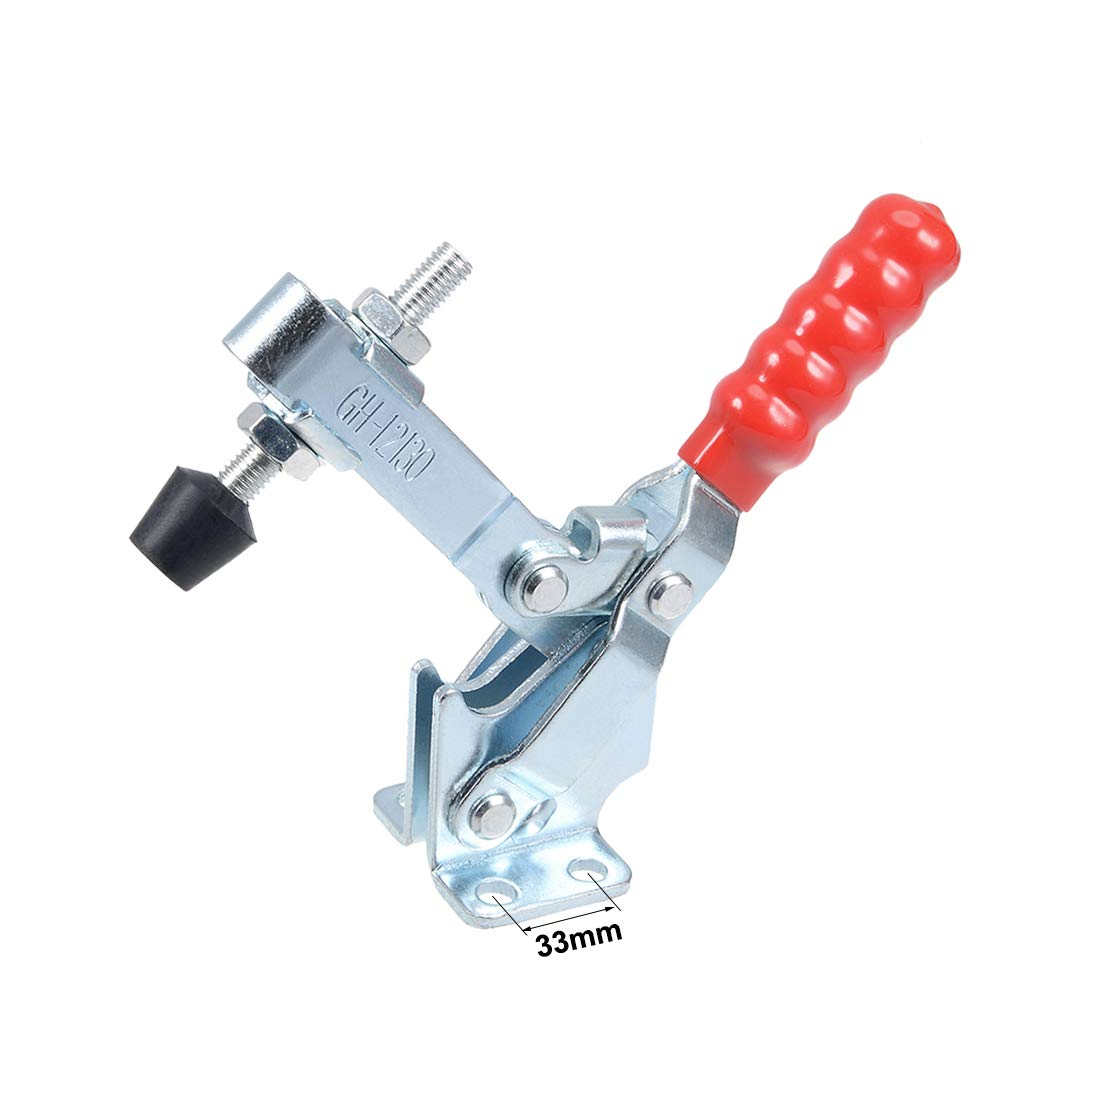 uxcell Toggle Clamp GH-12130 Vertical Quick-Release Hand Tool 227Kg//499Lbs 2pcs